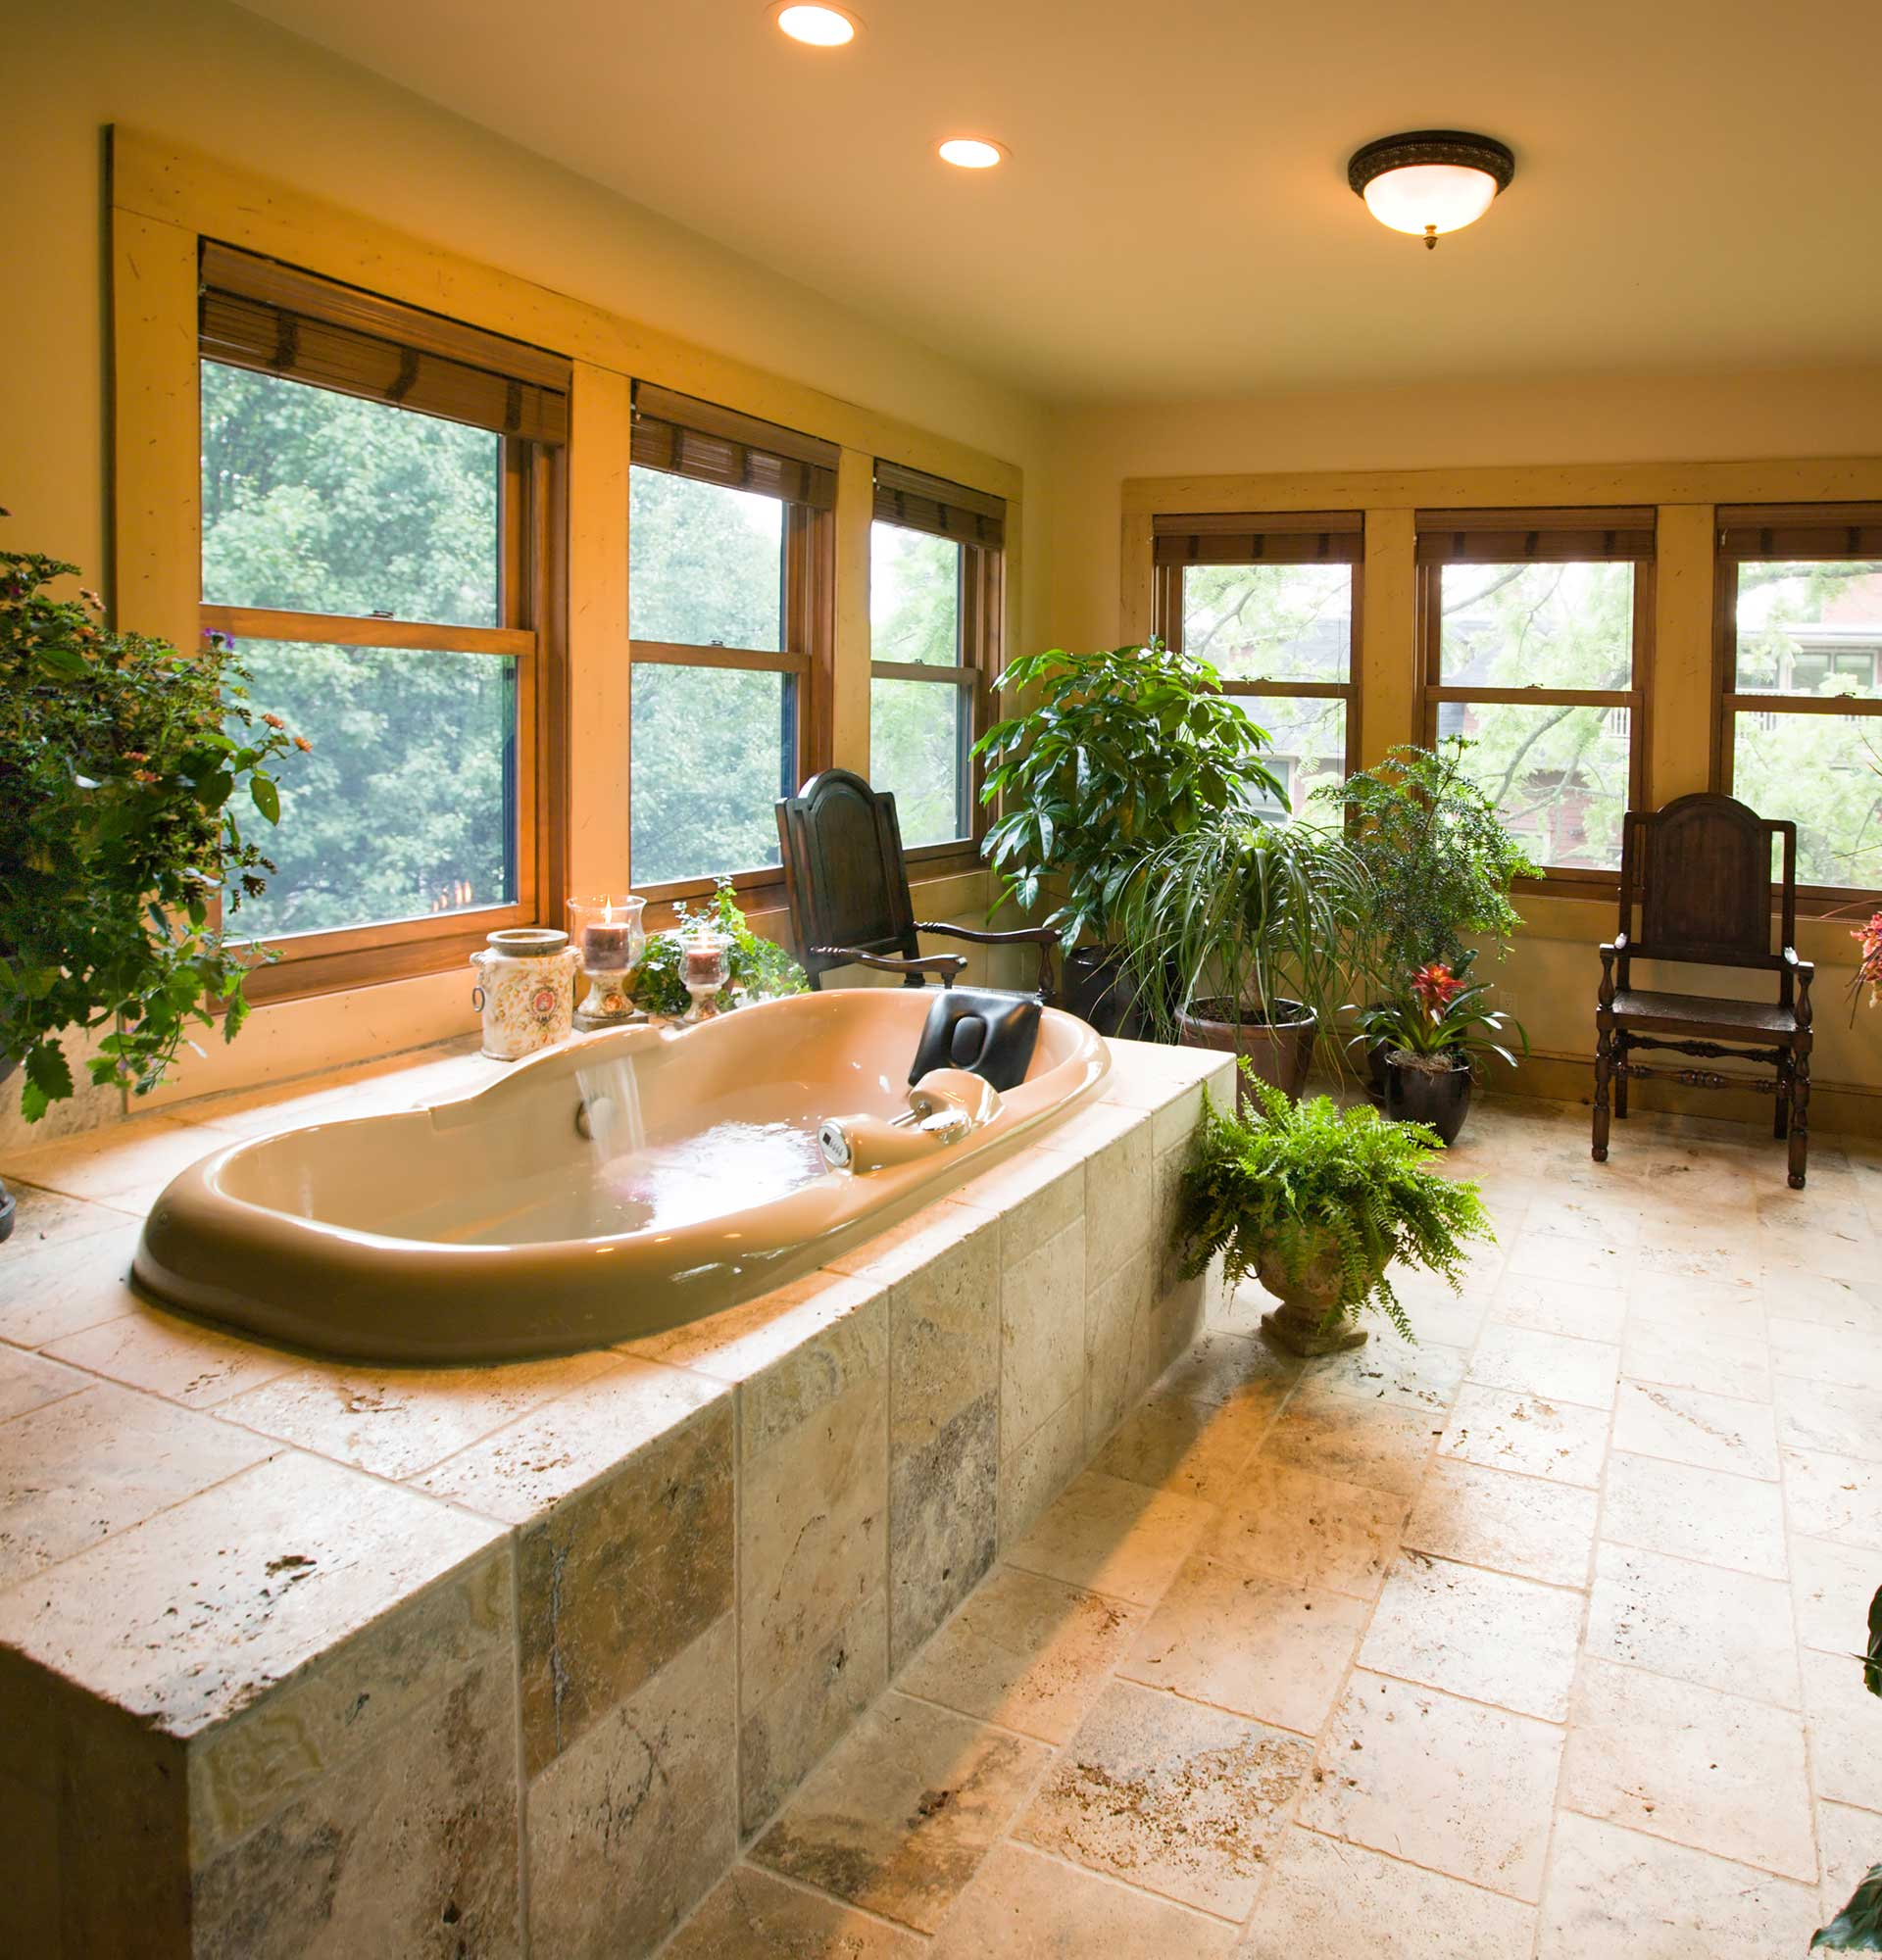 Luxury bath in Cloisters Suite at Inn on Montford in Asheville, NC. A spa room with multi-jet two-person Whirlpool with shiatsu massage, airbath, fireplace, and heated marble floors.